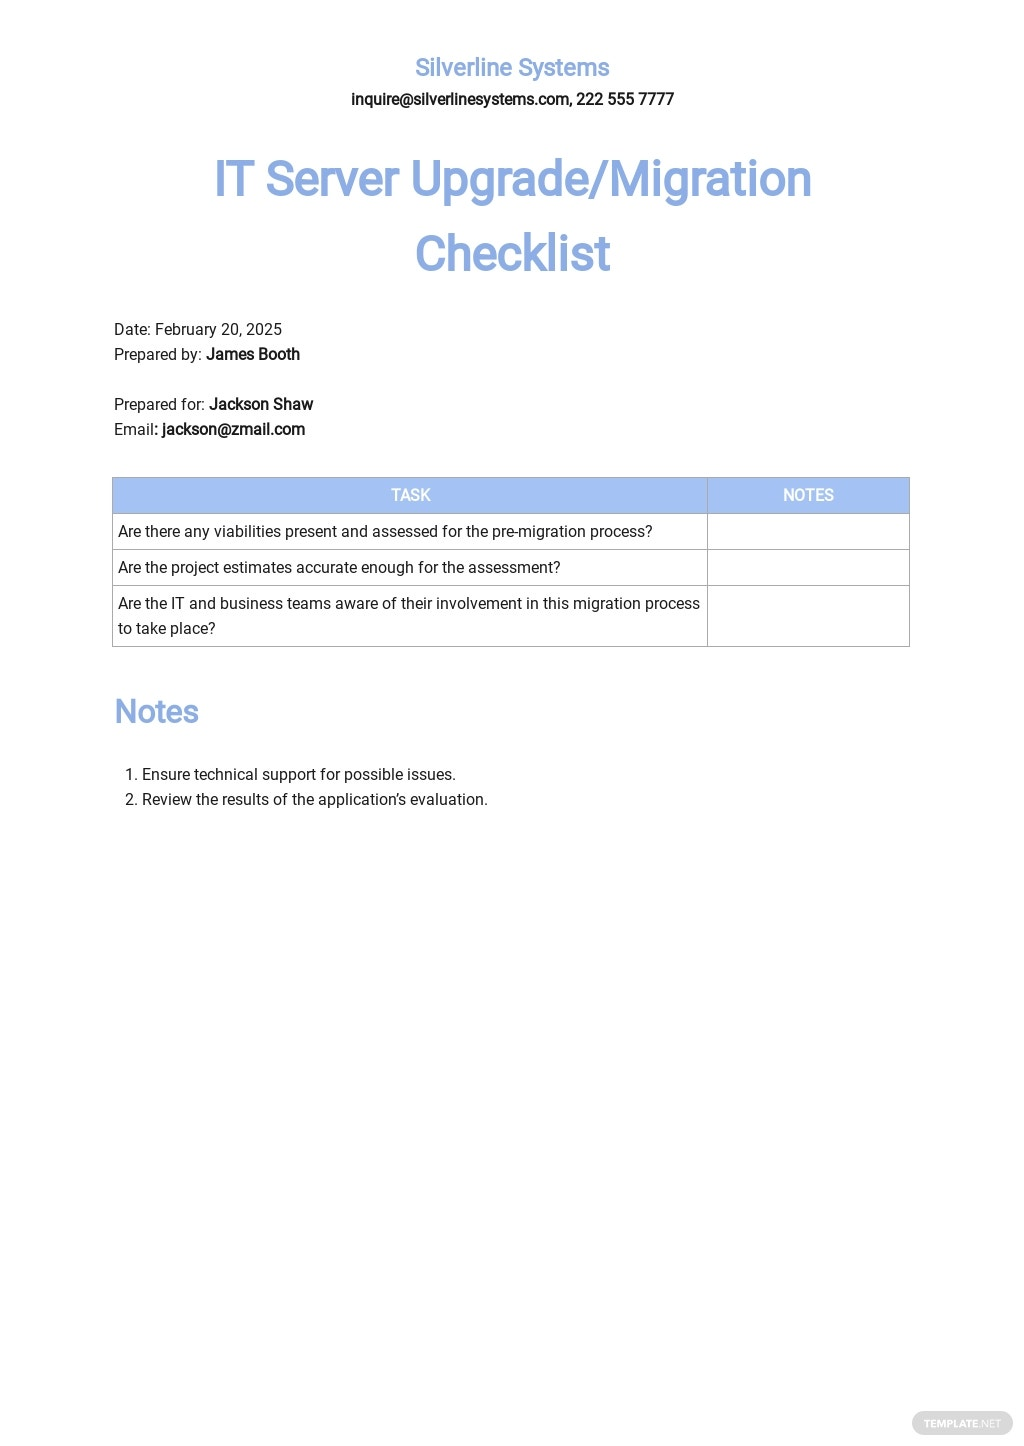 IT Server Upgrade / Migration Checklist Template